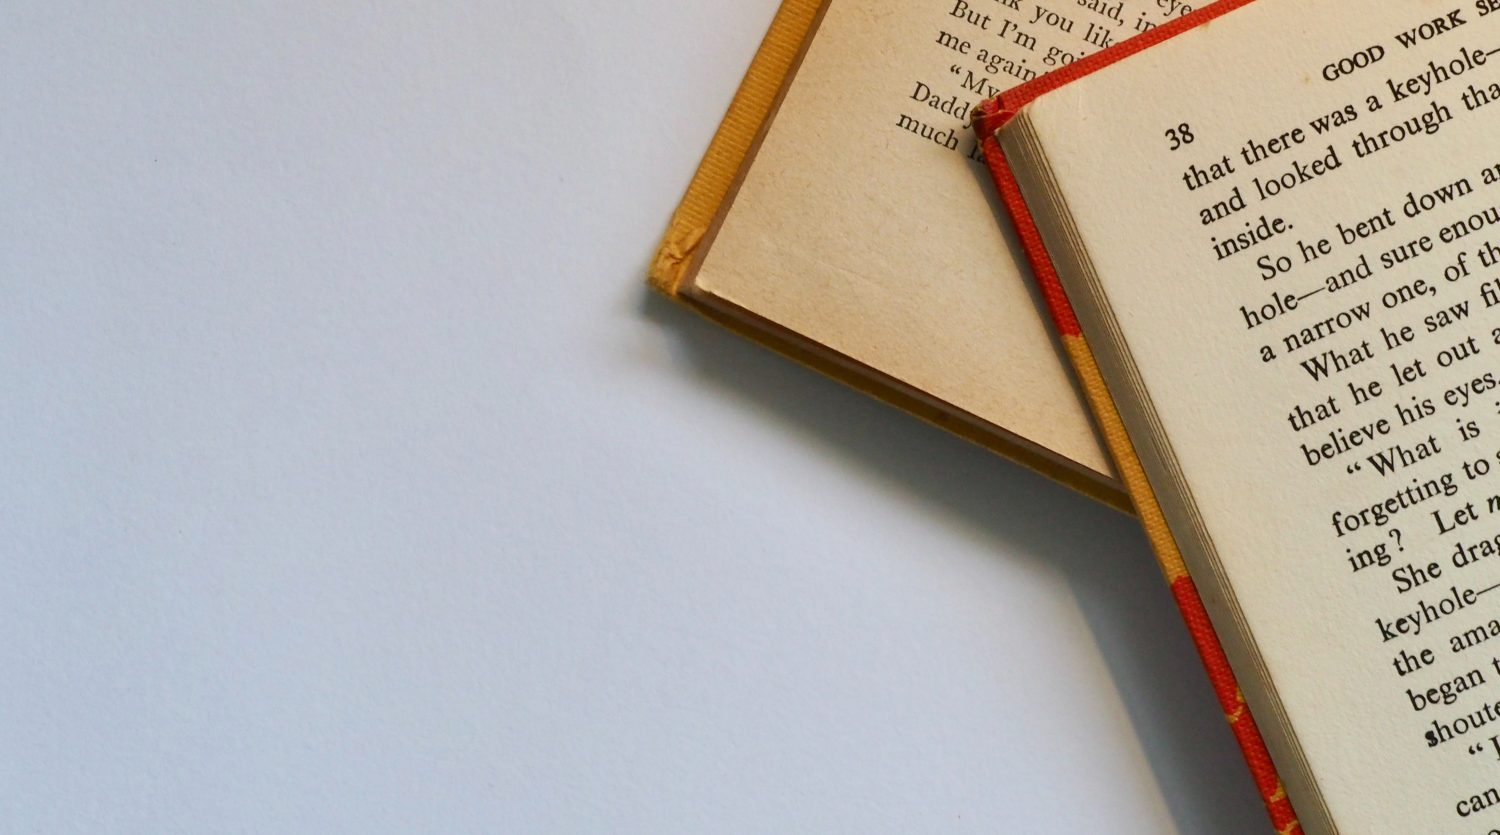 A close up image of pages from two print books, one laid above the other